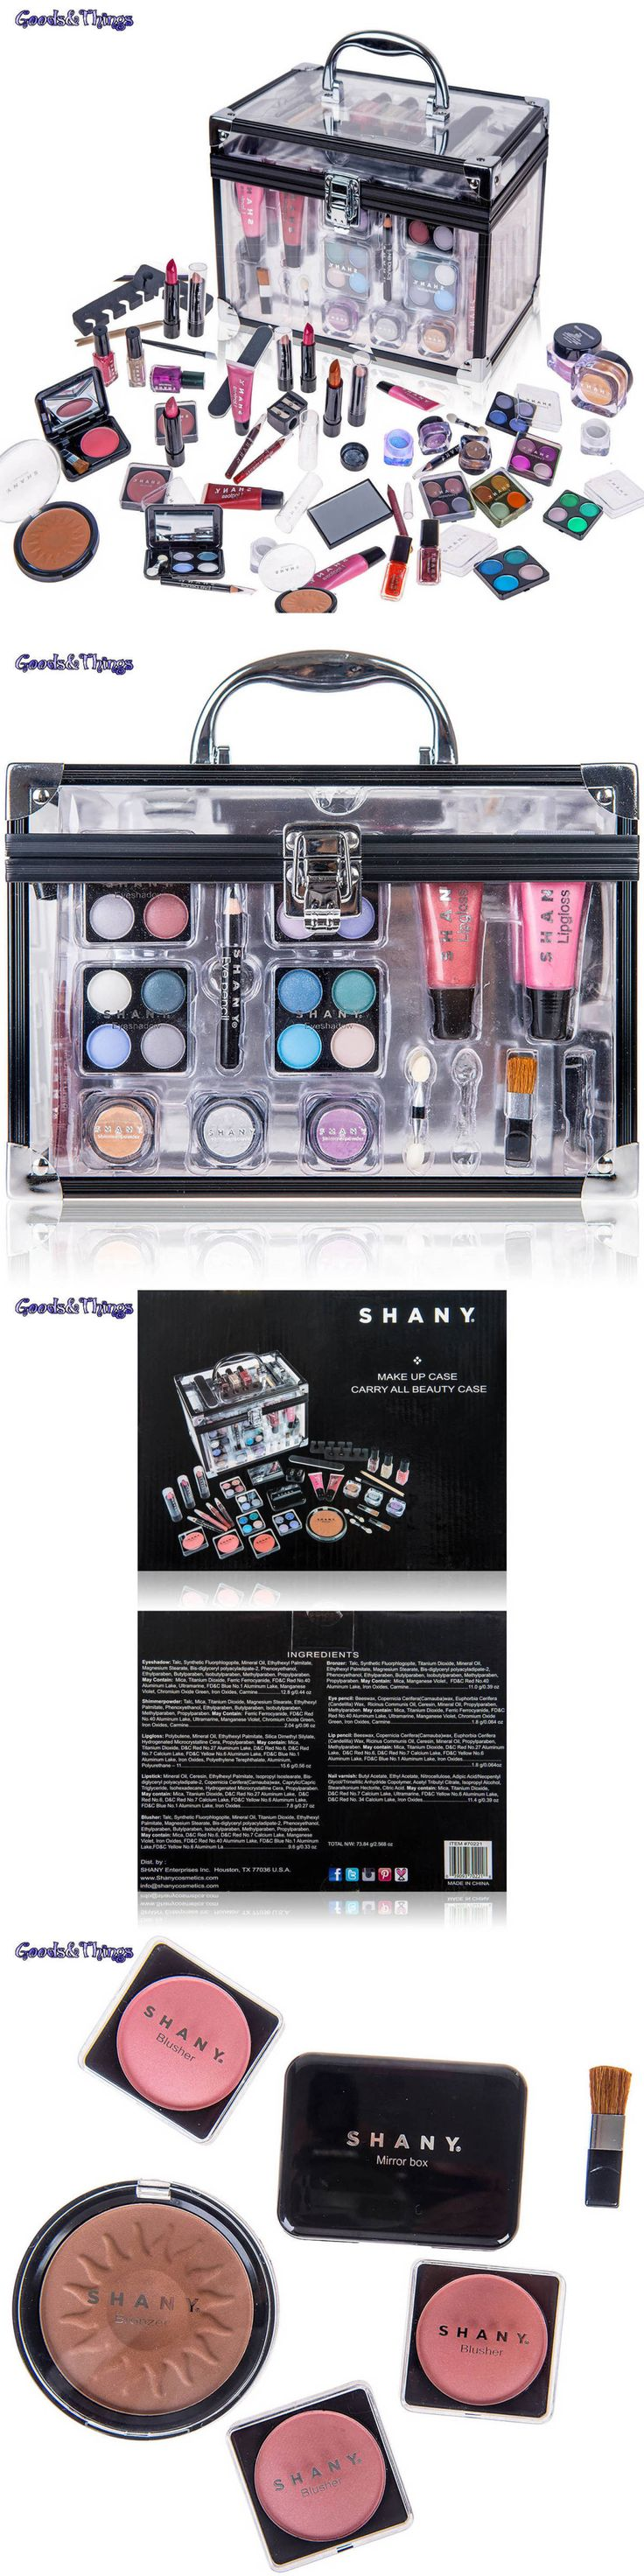 Makeup Sets and Kits: Shany All-In-One Makeup Kit Eyeshadow Palette Blush Gift Set Face Lip Color More BUY IT NOW ONLY: $48.45